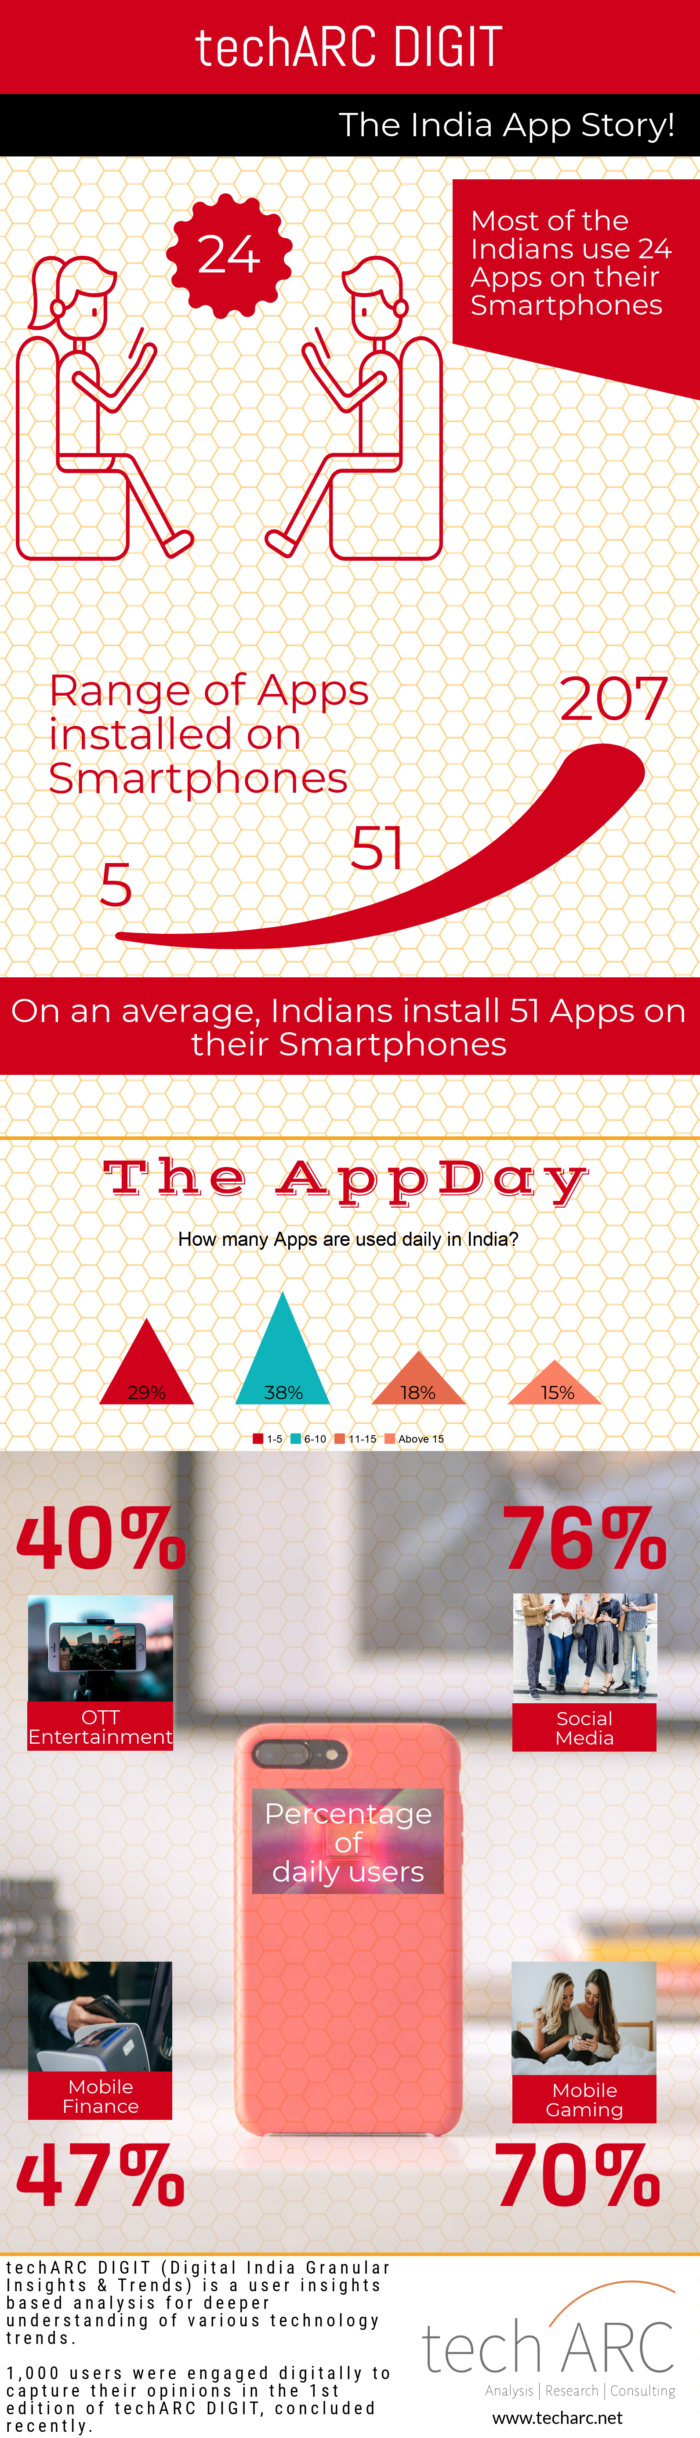 India App engagement is on the rise | DigiAnalysys